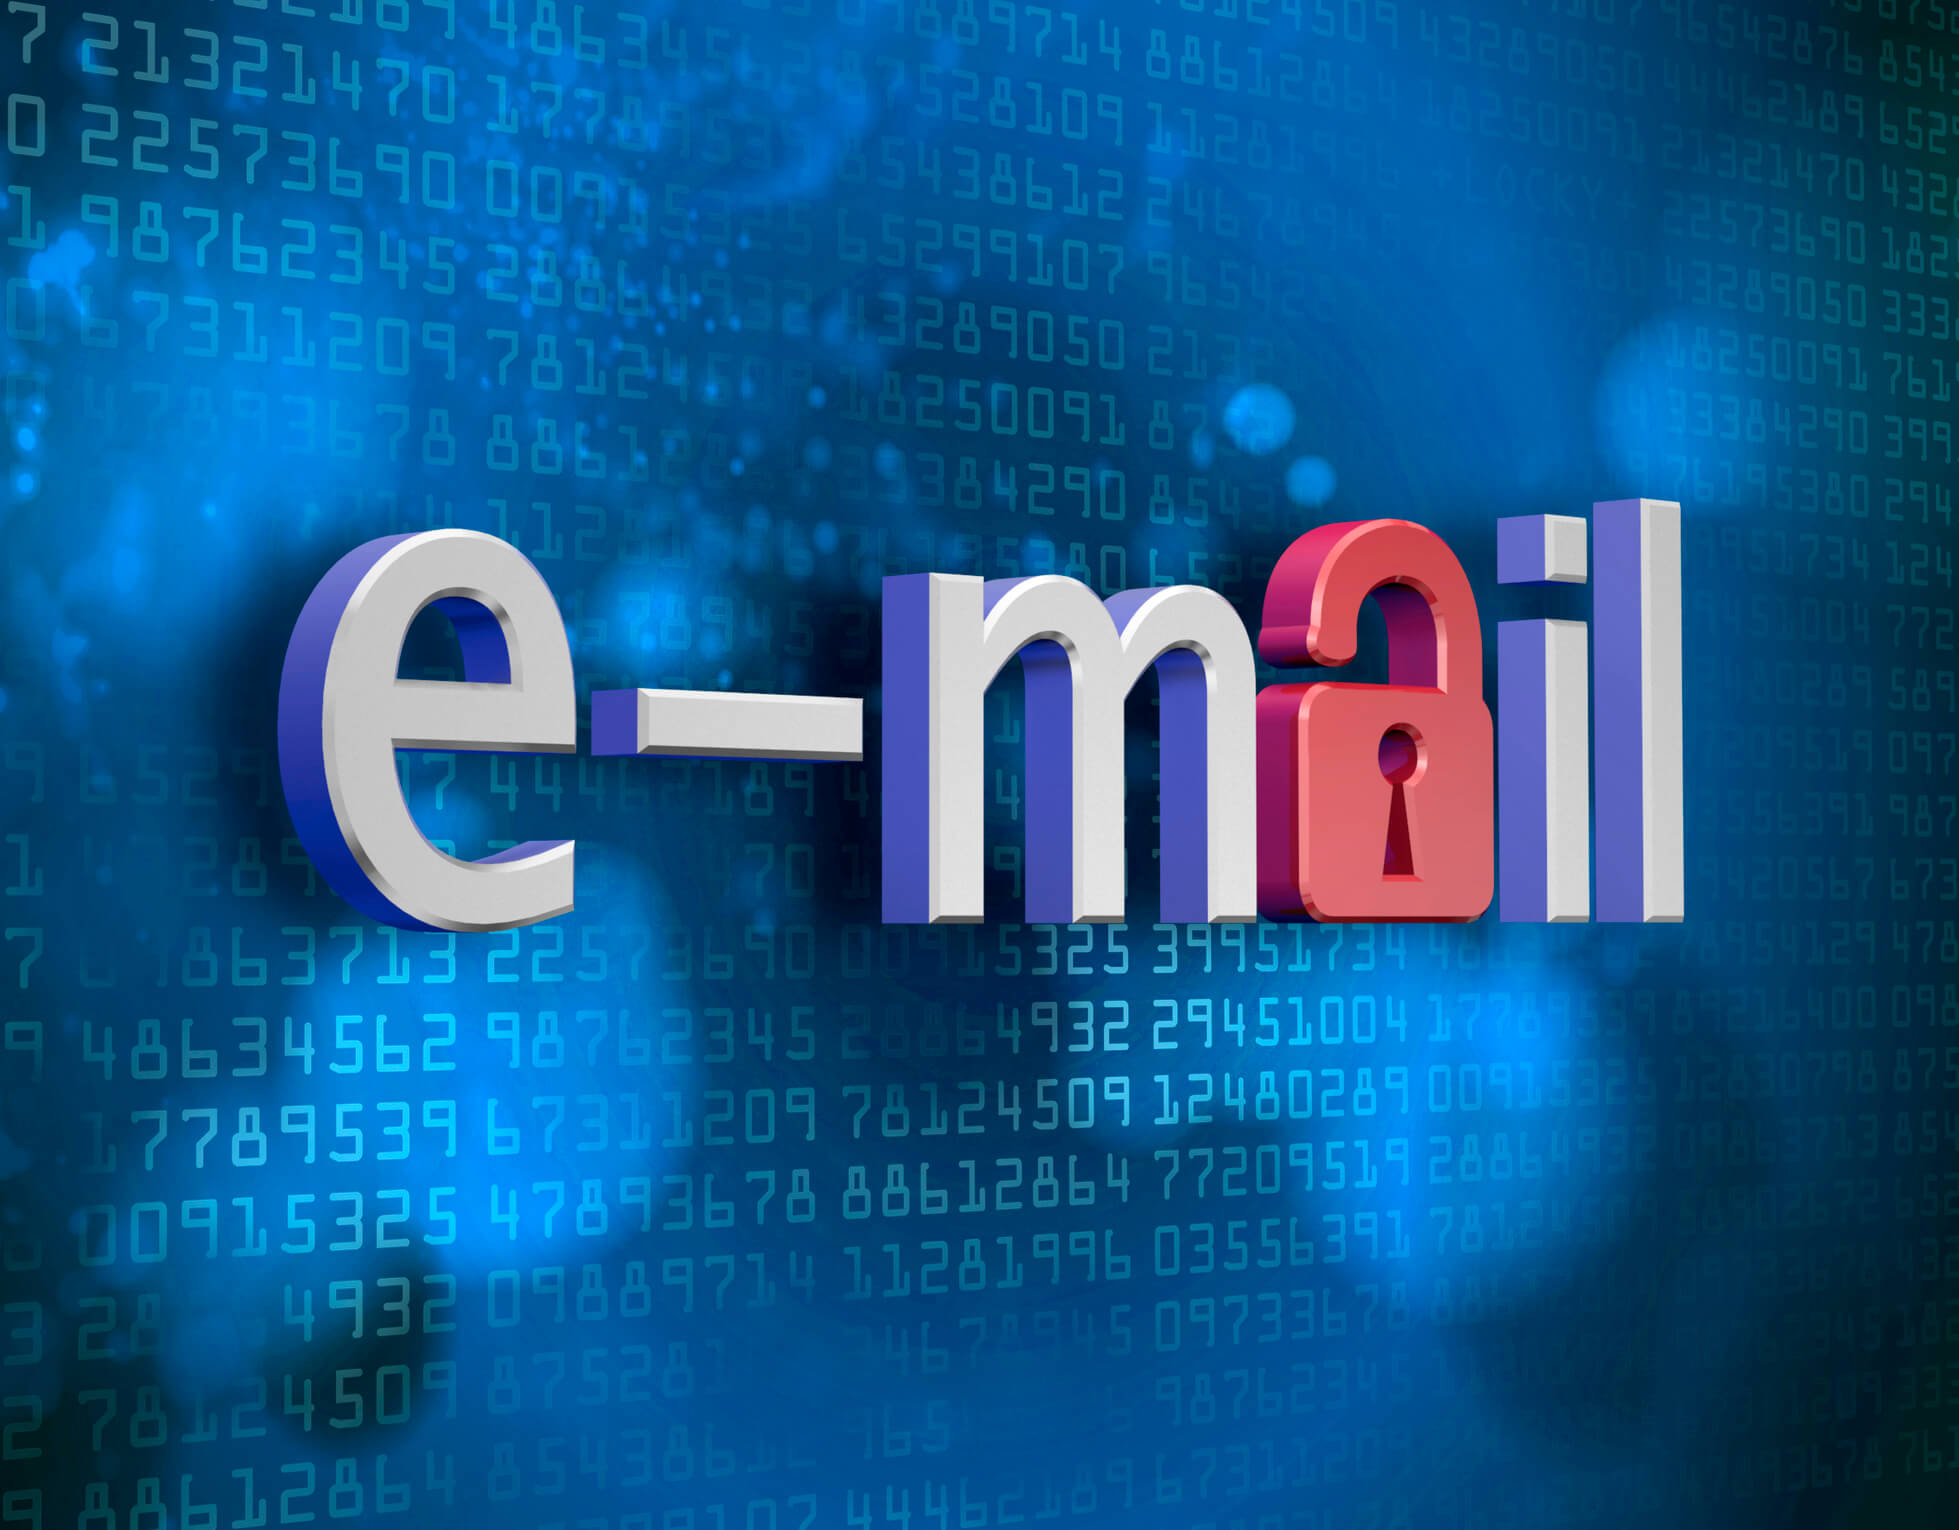 Email security - antispam - email spam - antiphishing - email phishing - atmail email experts